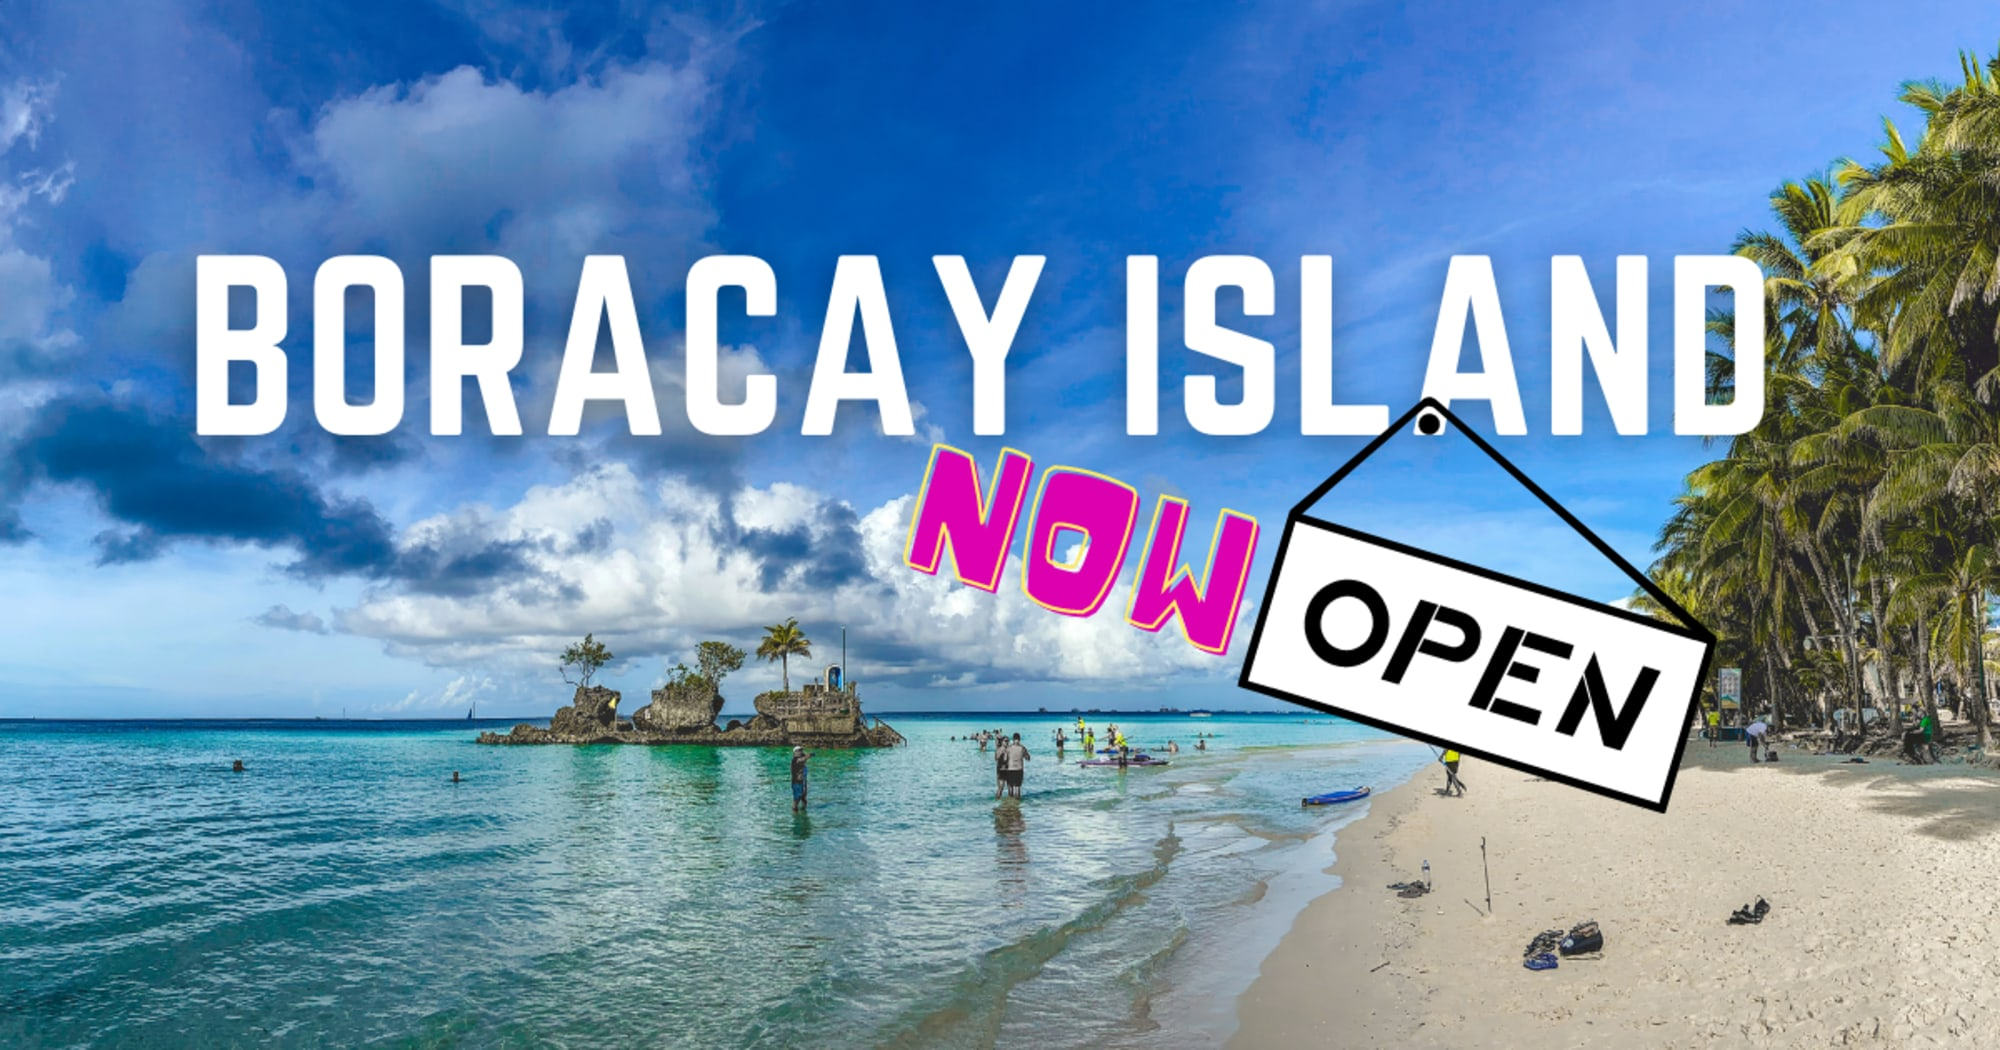 Boracay Island re-opened its doors to incoming tourists starting today